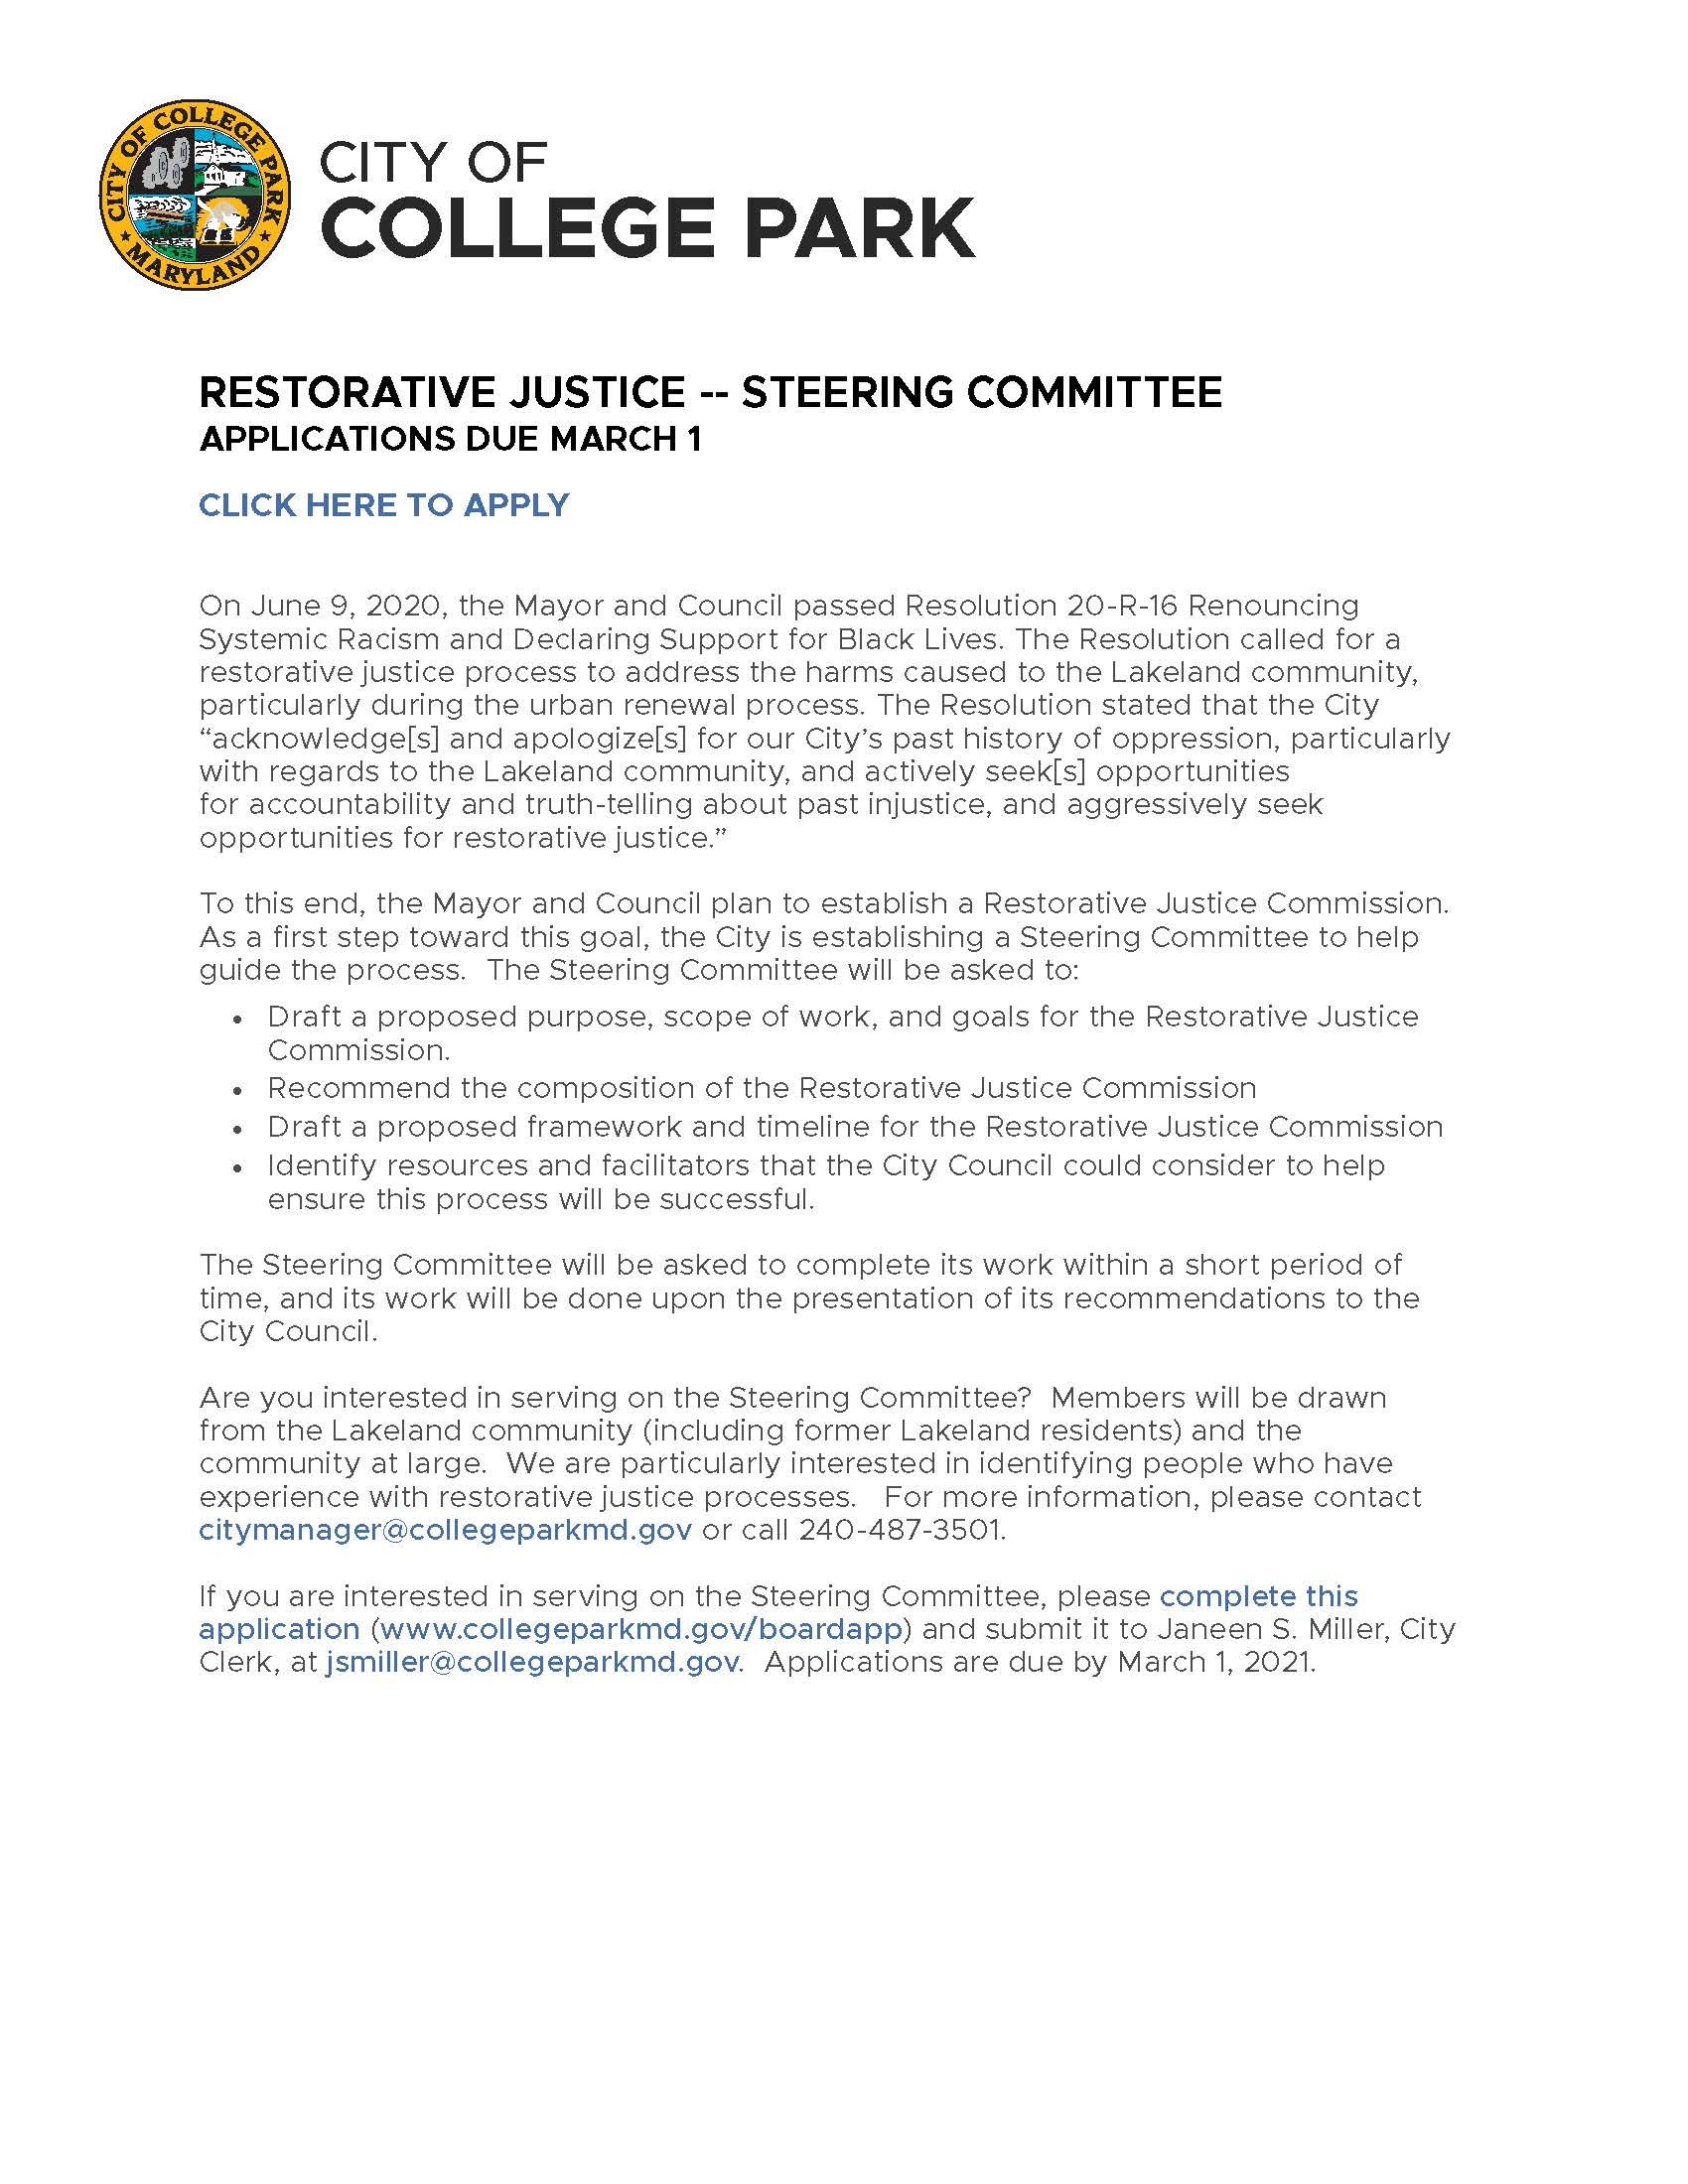 City Restorative Justice Commission Flyer